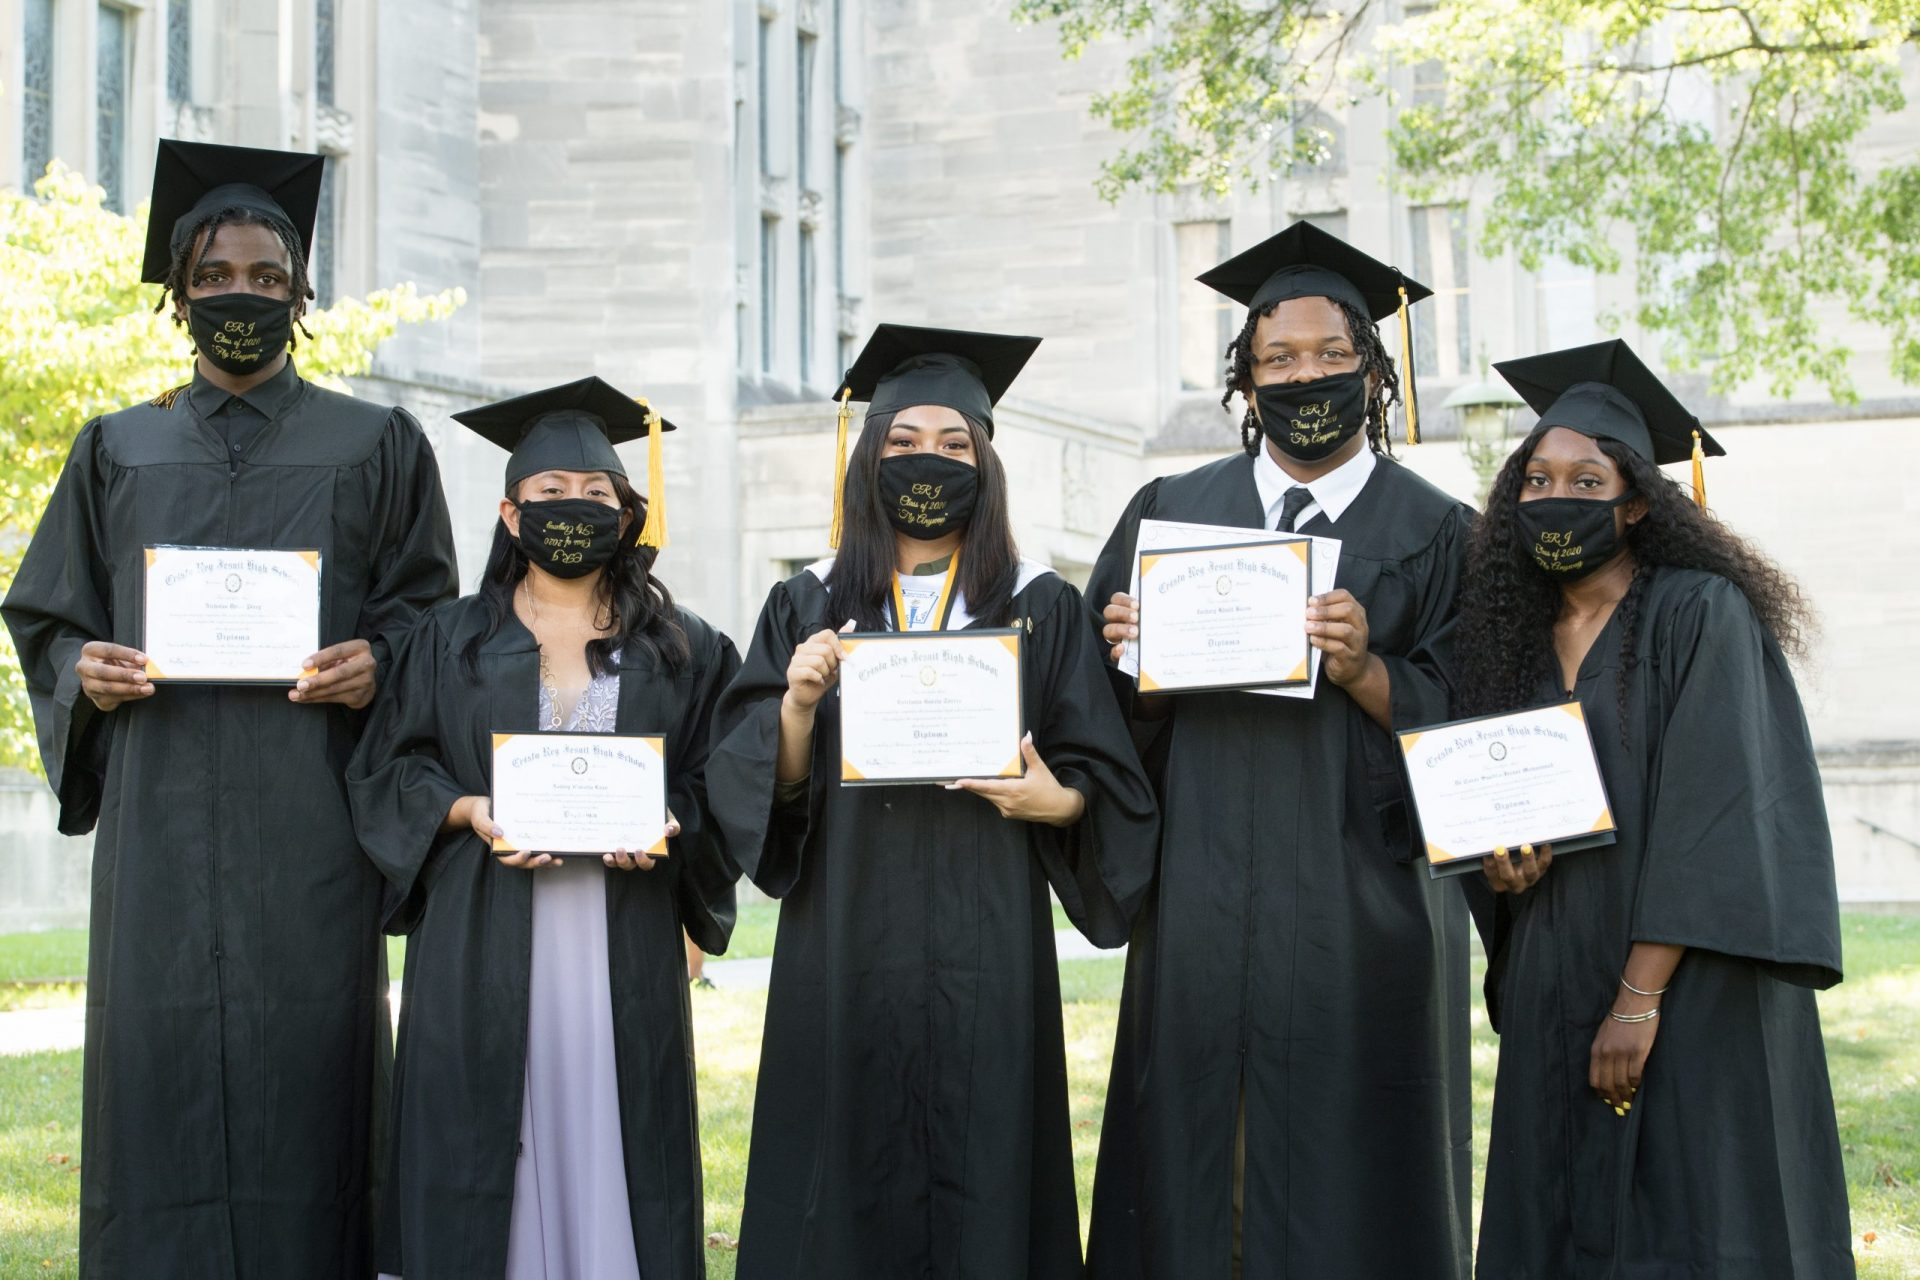 5 CRJ graduates pose with diplomas and graduation themed masks